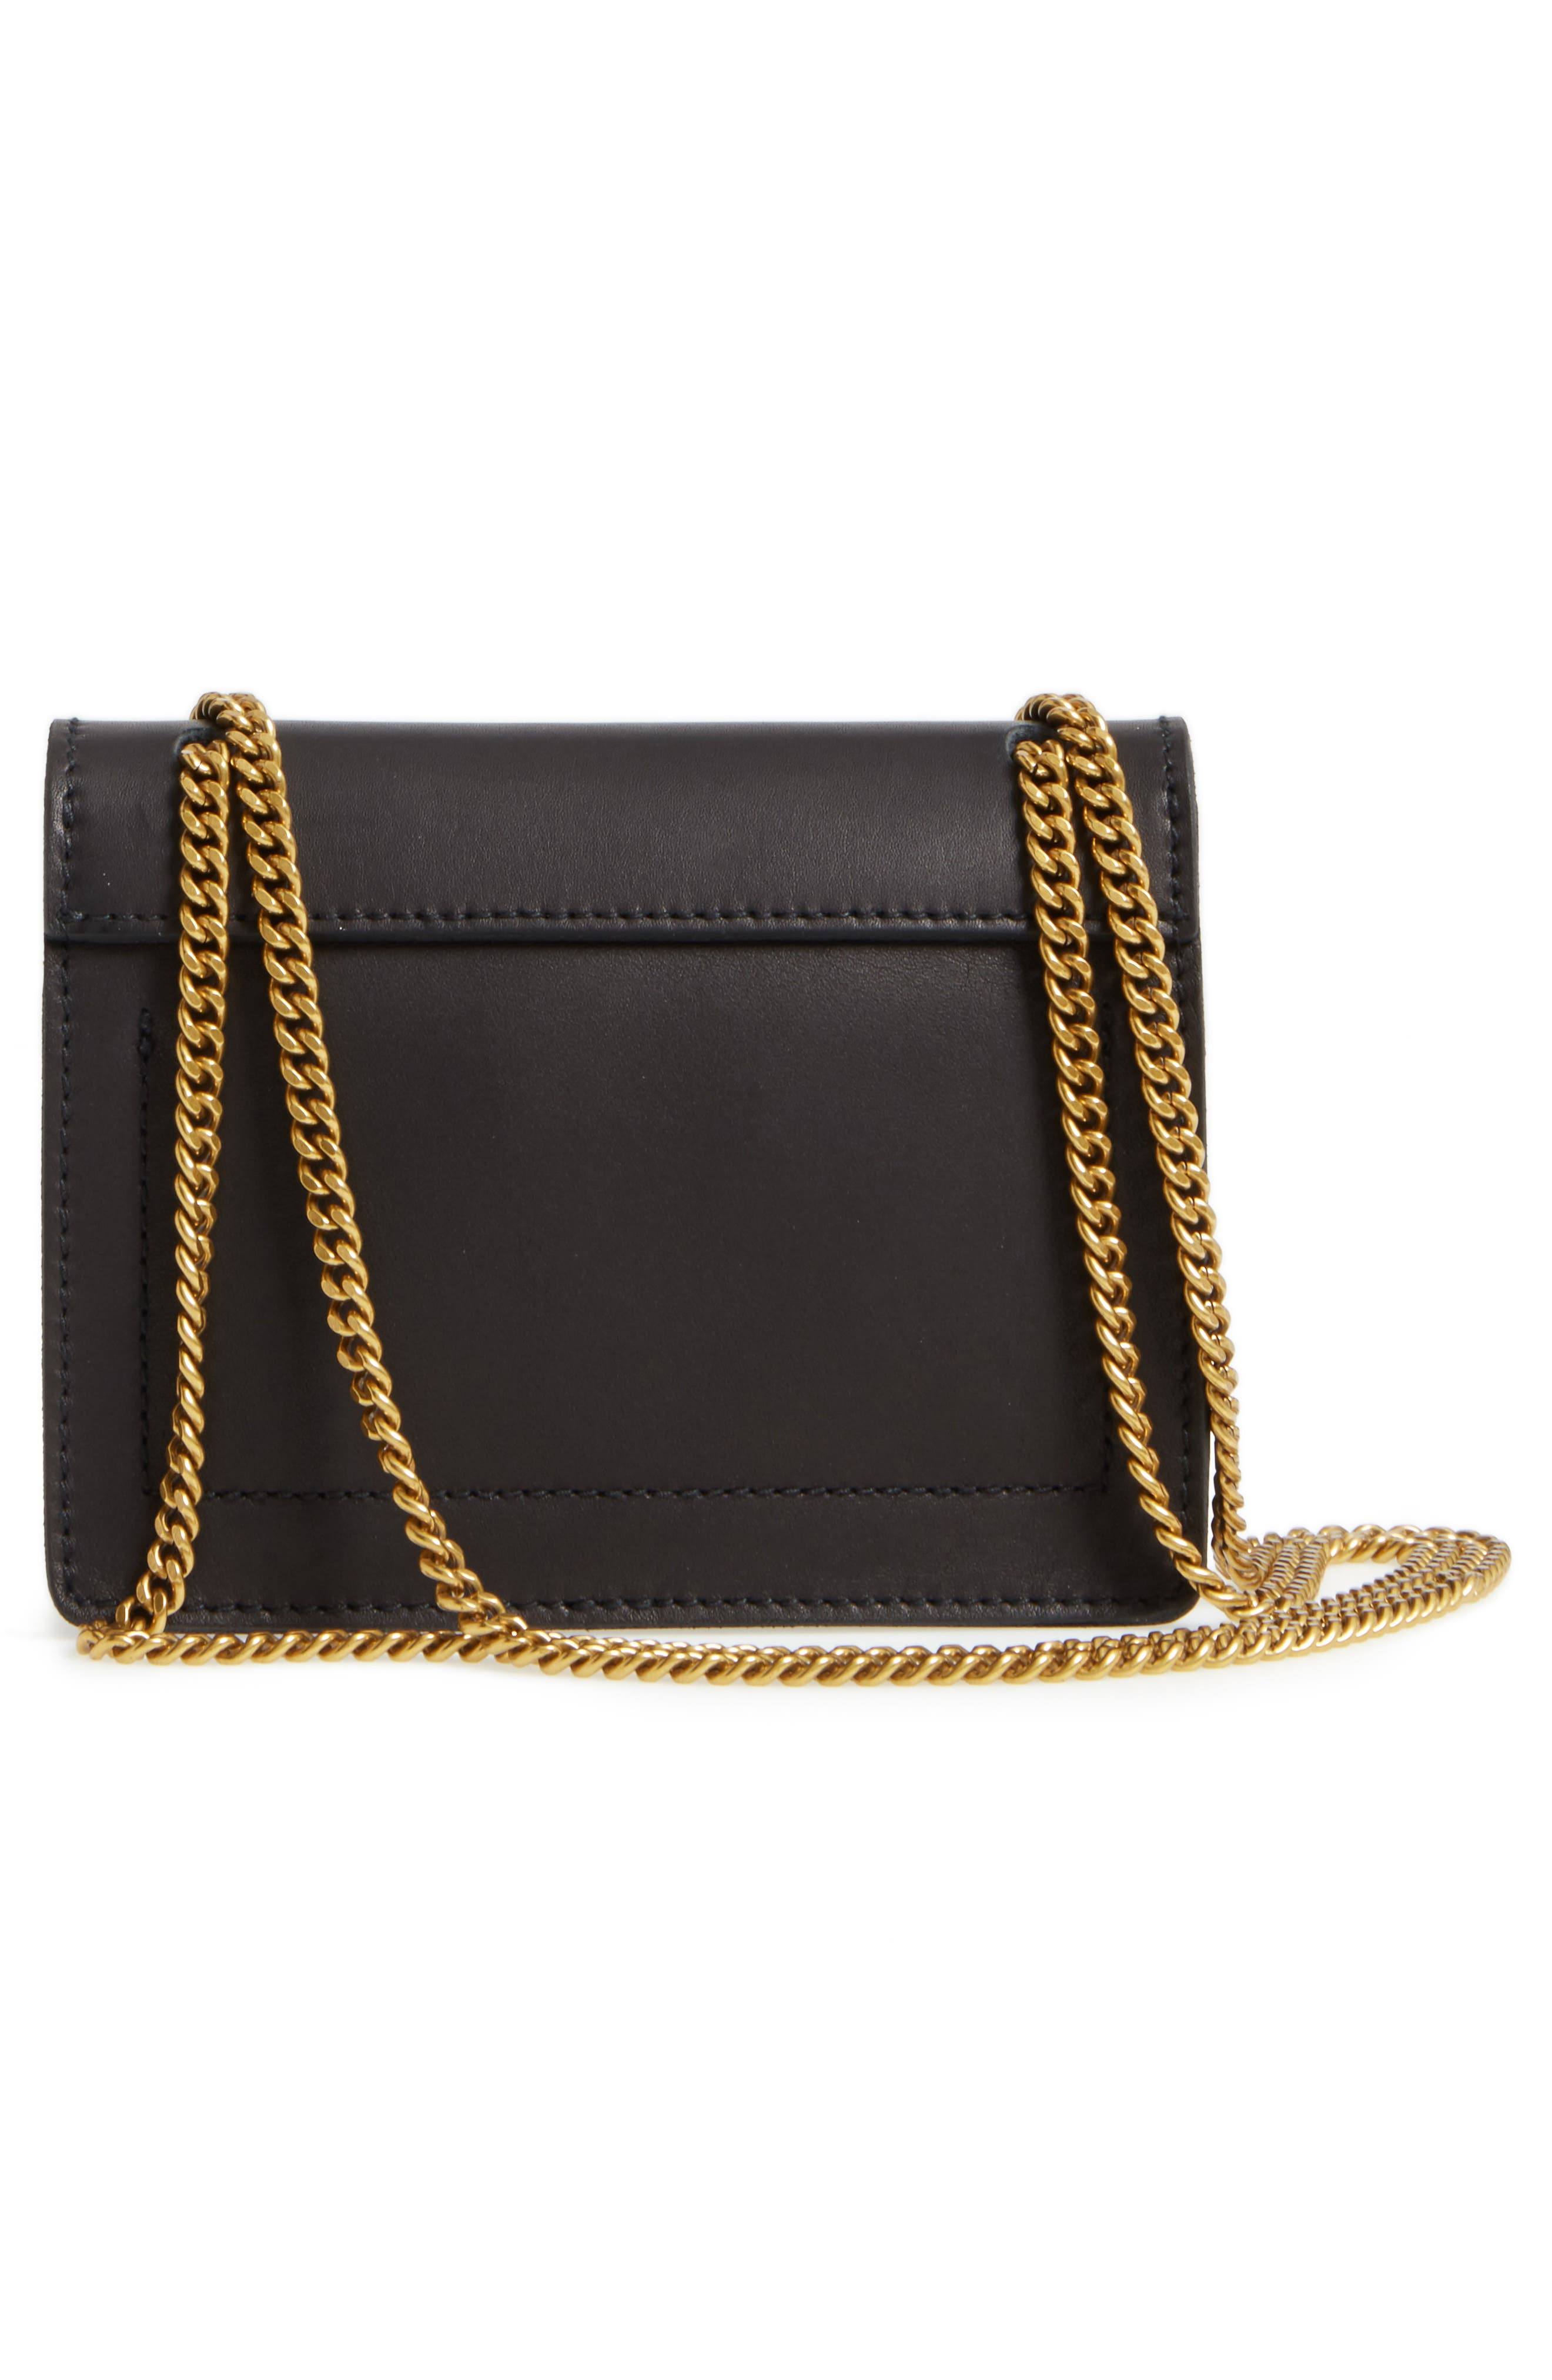 Alternate Image 3  - Madewell Chain Leather Crossbody Bag